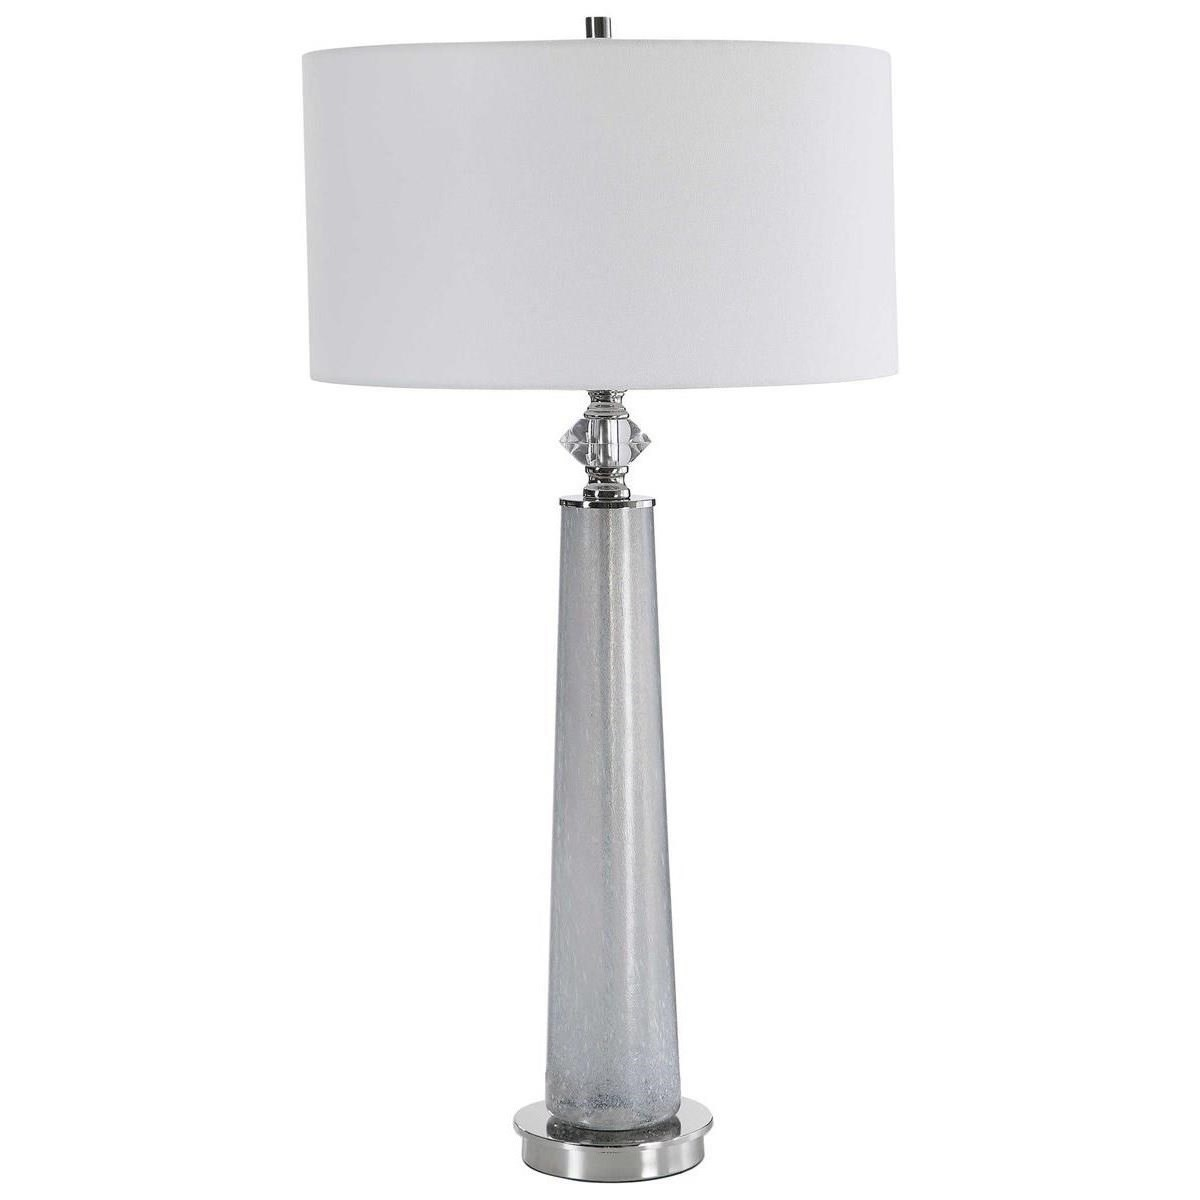 Grayton Frosted Art Table Lamp